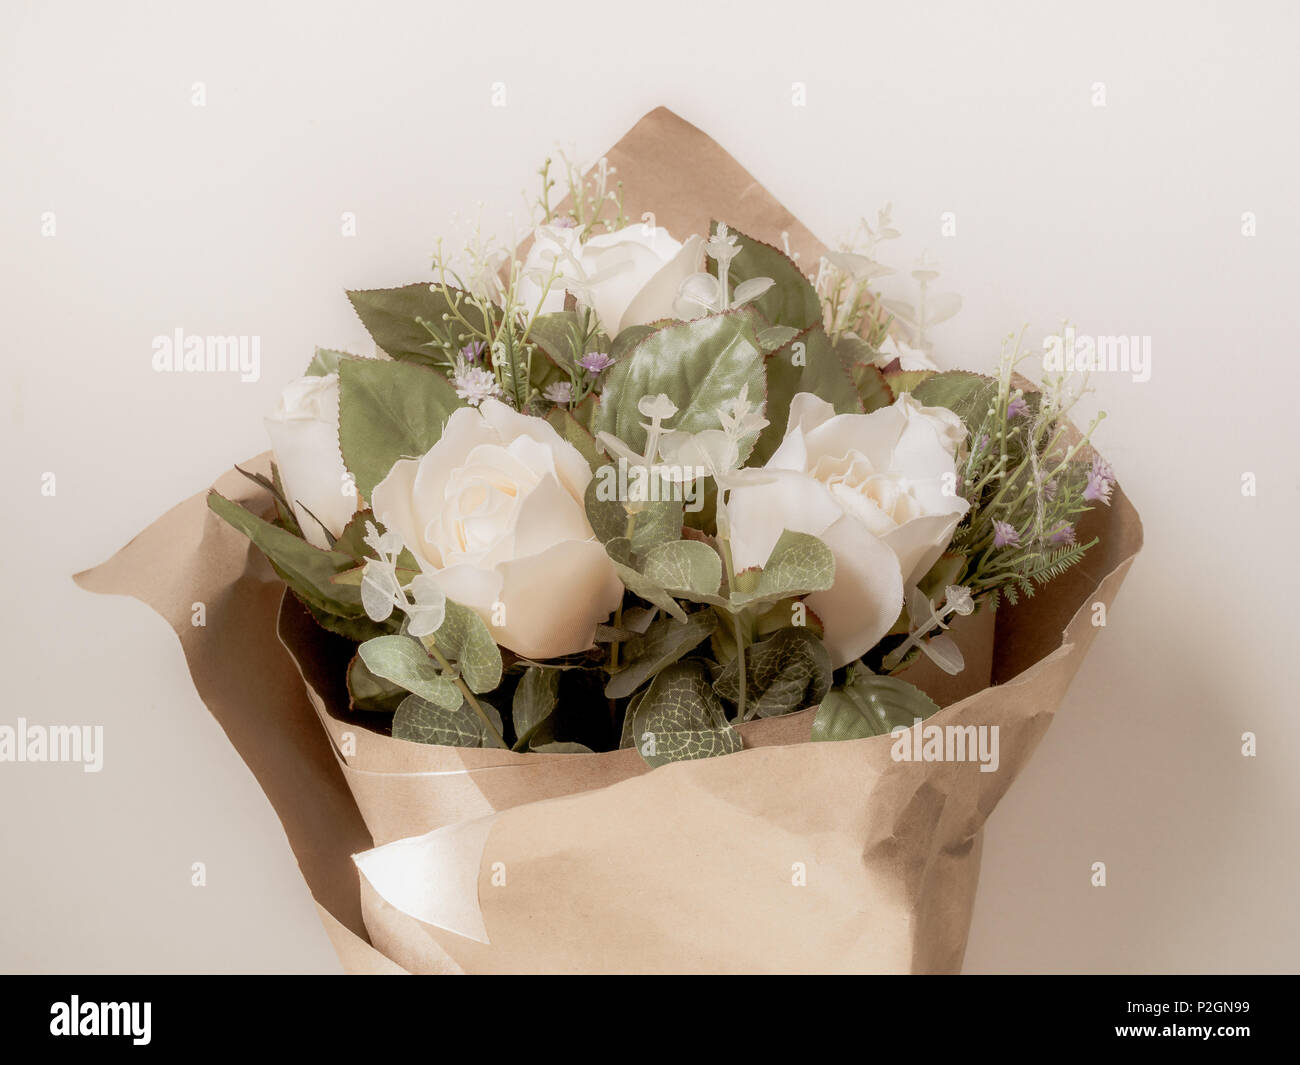 Artificial white roses bouquet in wrapping brown craft paper isolate artificial white roses bouquet in wrapping brown craft paper isolate on white background with space mightylinksfo